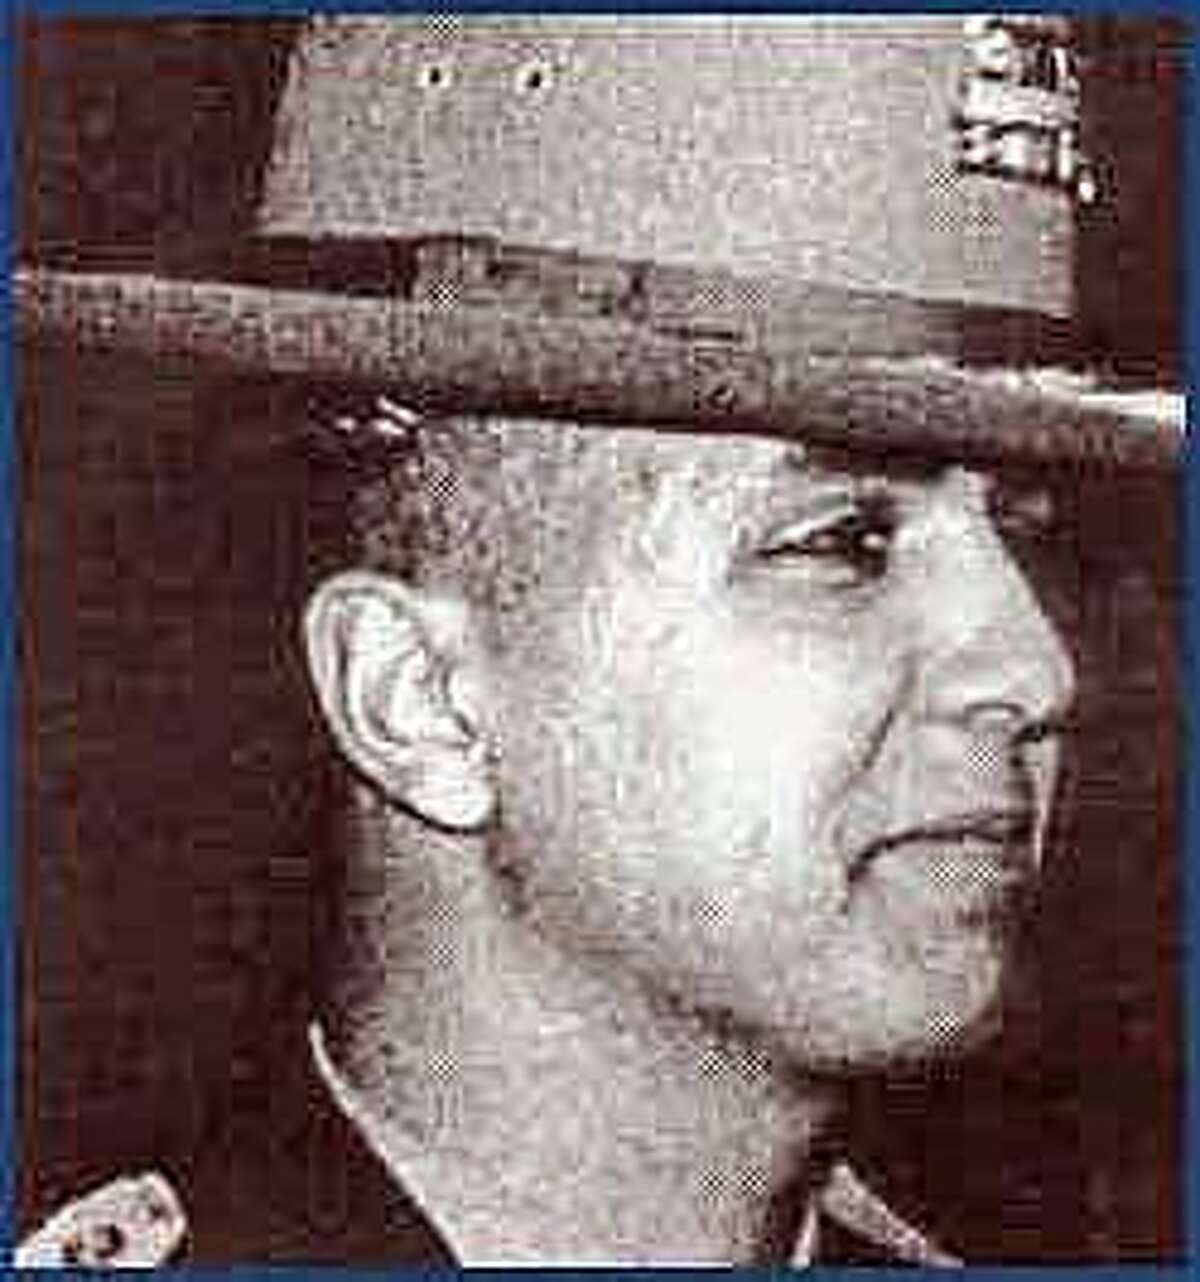 Twenty-seven years ago on Thursday, Nov. 22, 2016, Trooper Jorge Agosto was killed while working with a traffic squad on I-95 in Greenwich. The driver who struck and killed the 27-year-old trooper had a diabetic seizure that caused dizziness, confusion and blackouts. Agosto, died the day before Thanksgiving on Nov. 22, 1989.